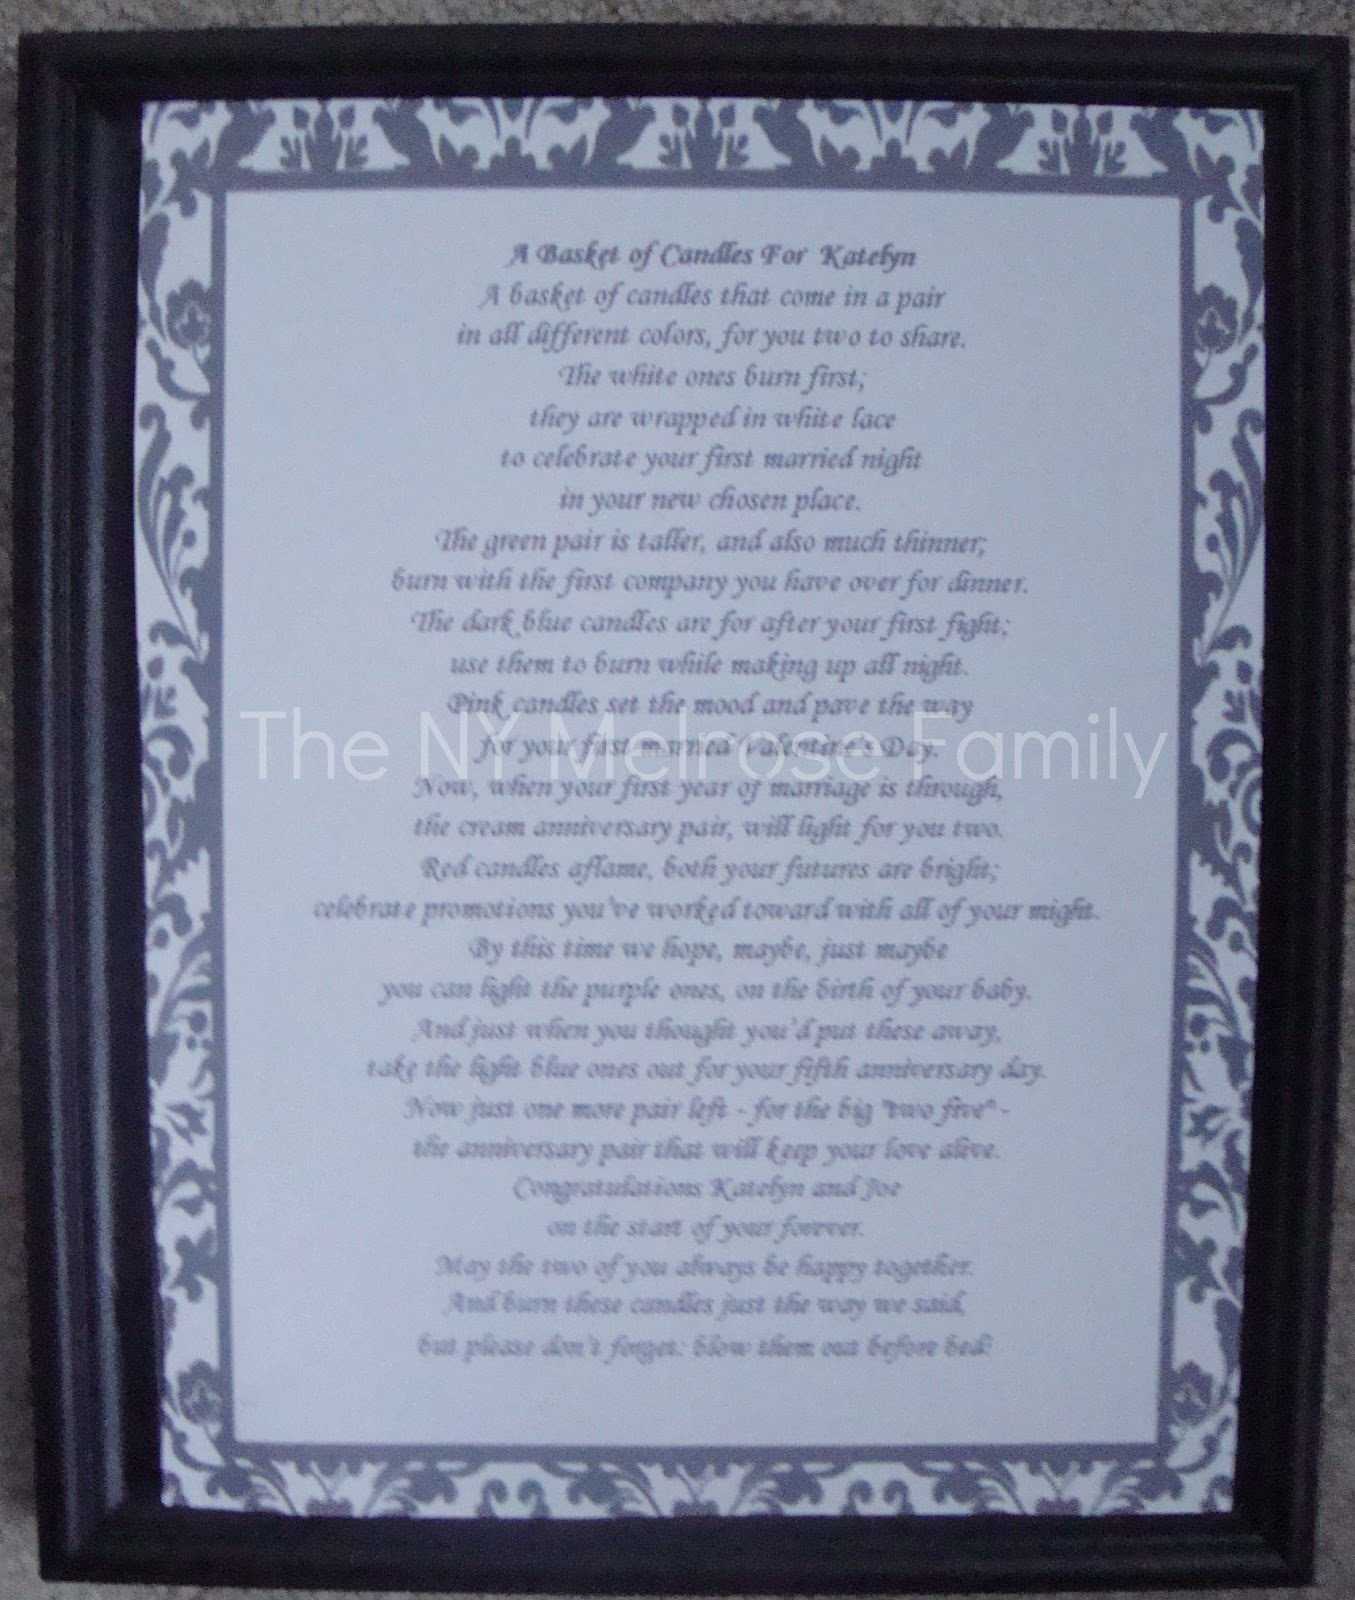 Funny wedding shower gift poems gift ideas bridal shower poems filmwisefo